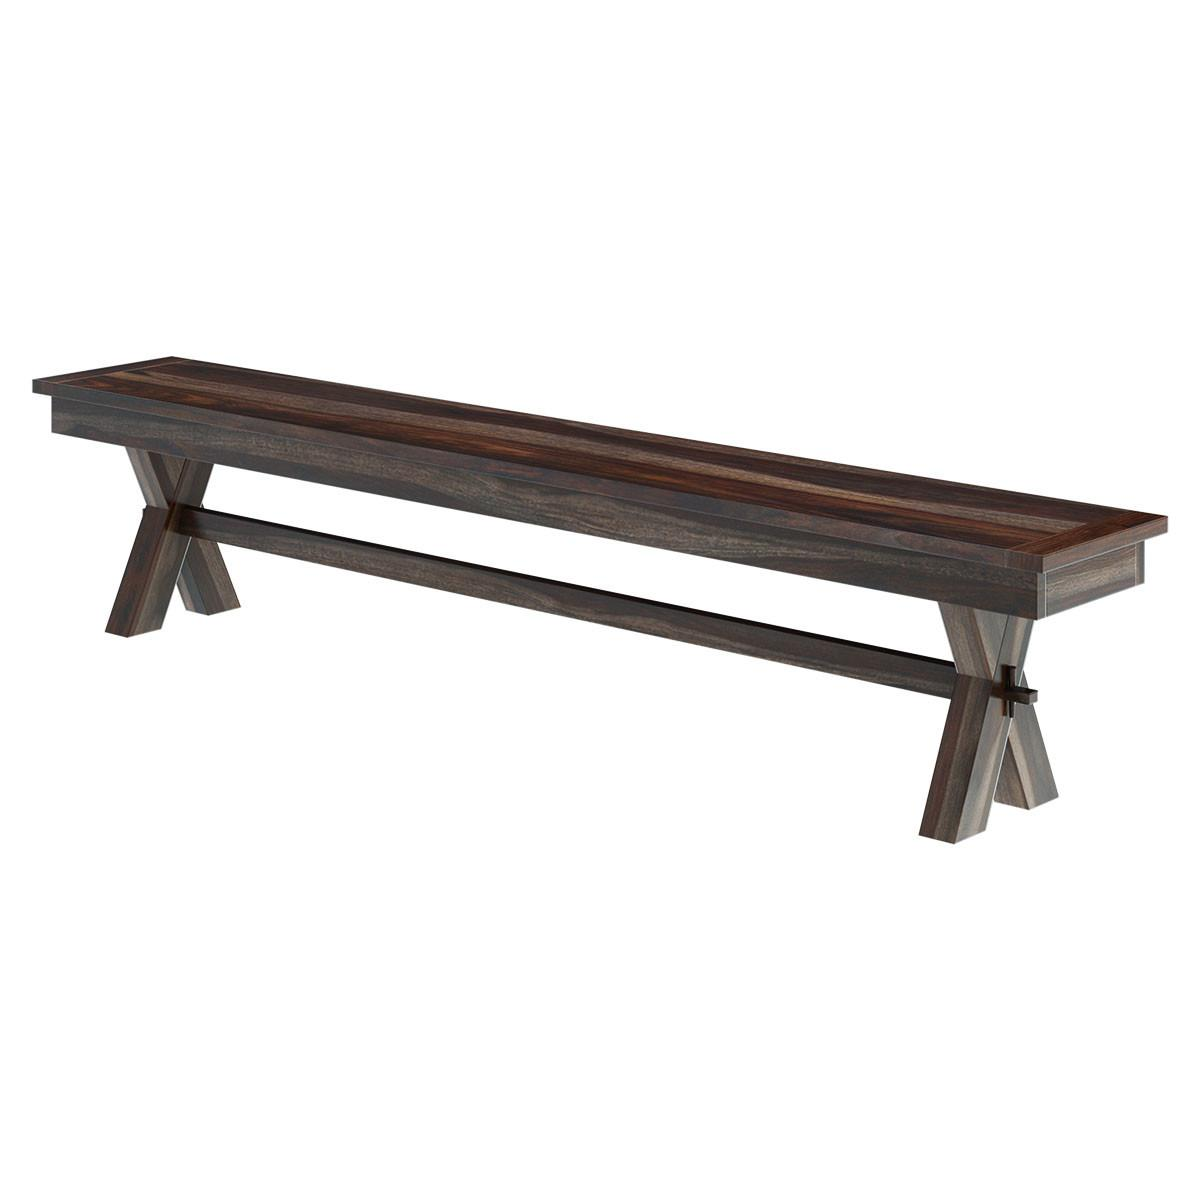 Indoor Picnic Style Dining Table Bench Set Extensions